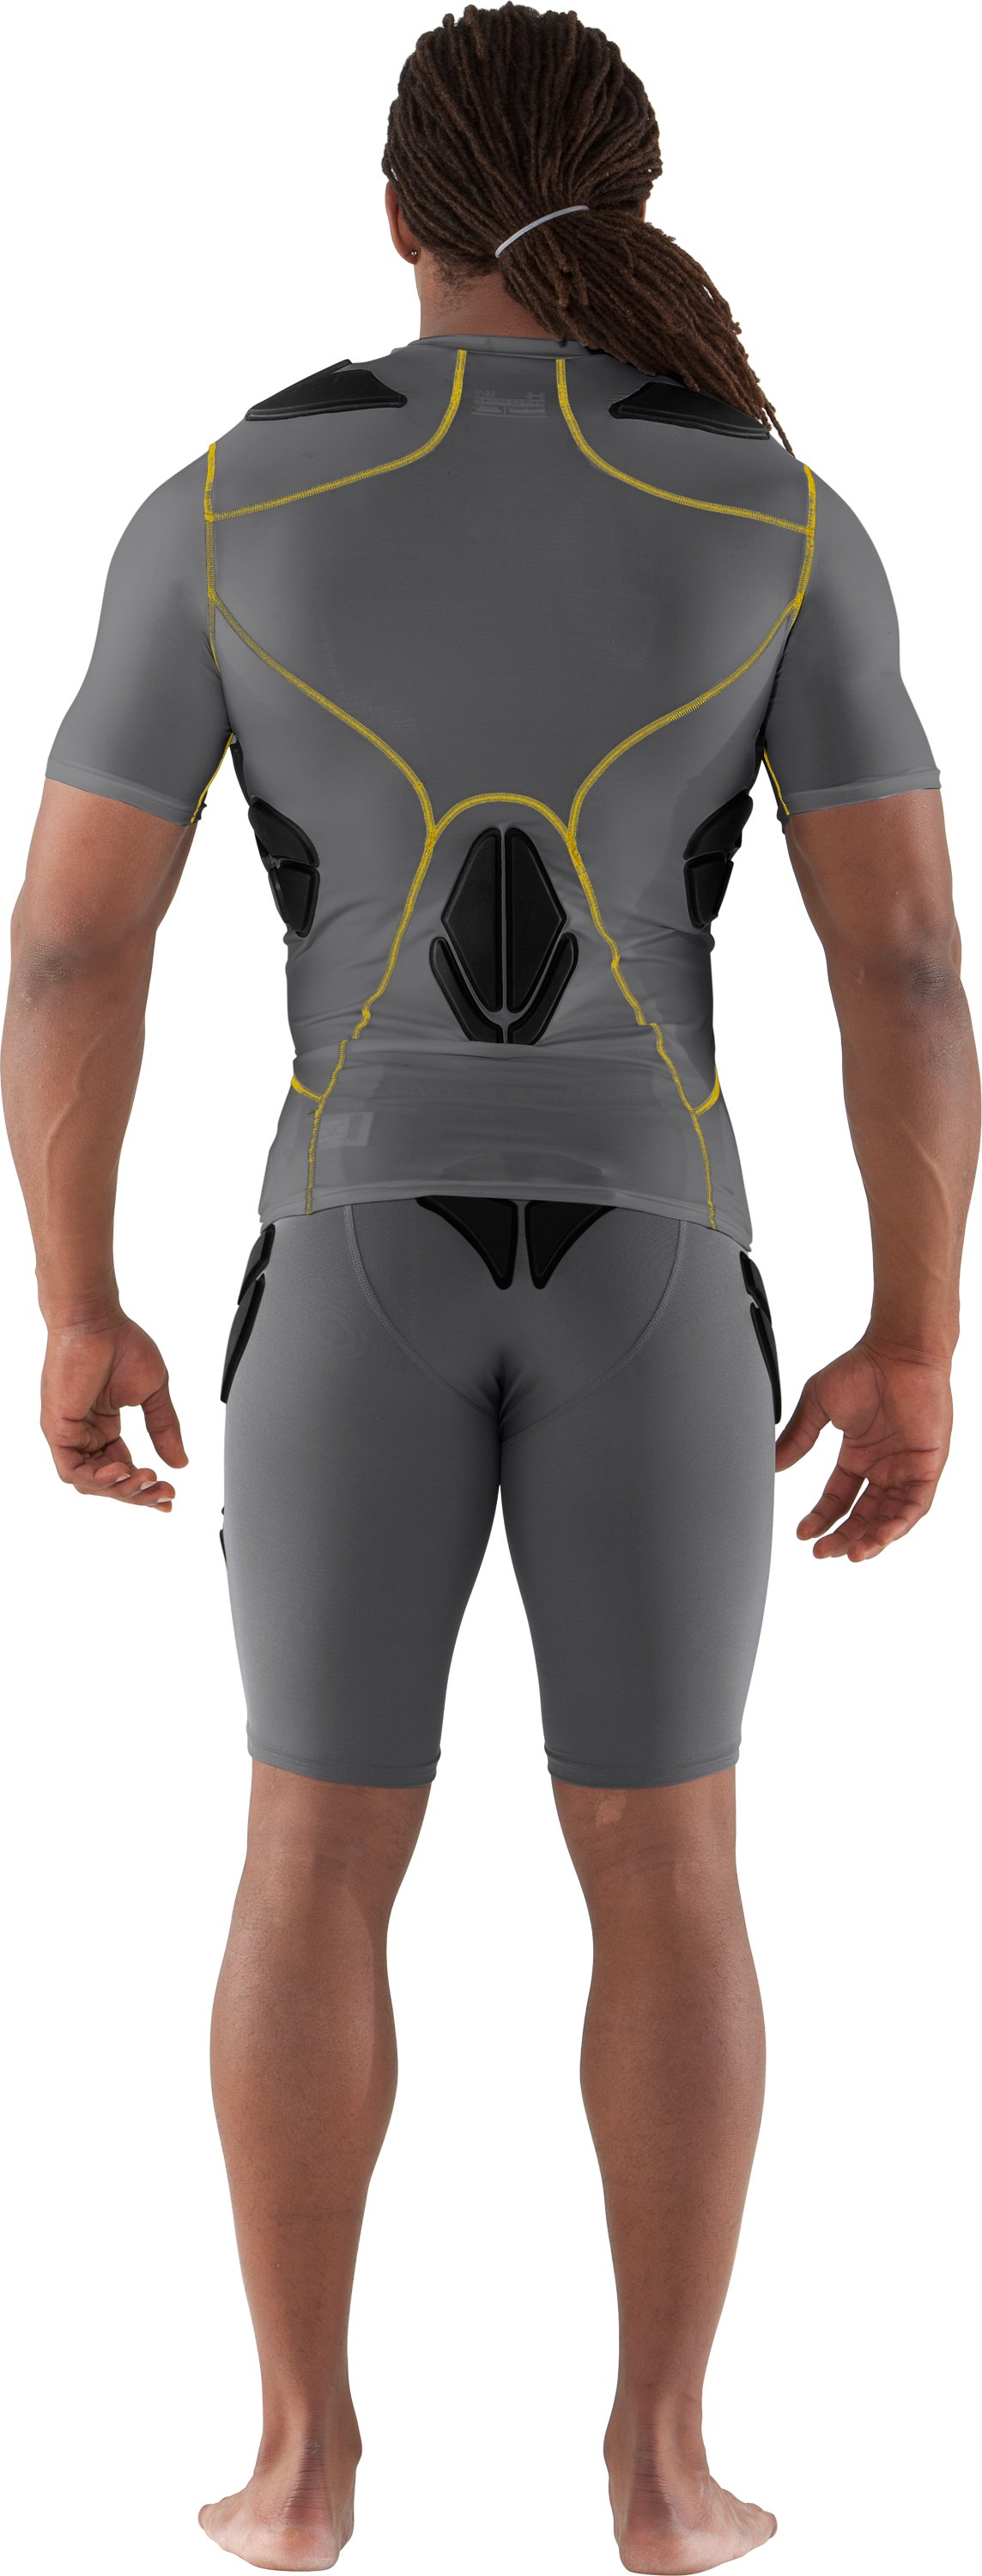 Men's Gameday Armour® Girdle, Graphite, Back